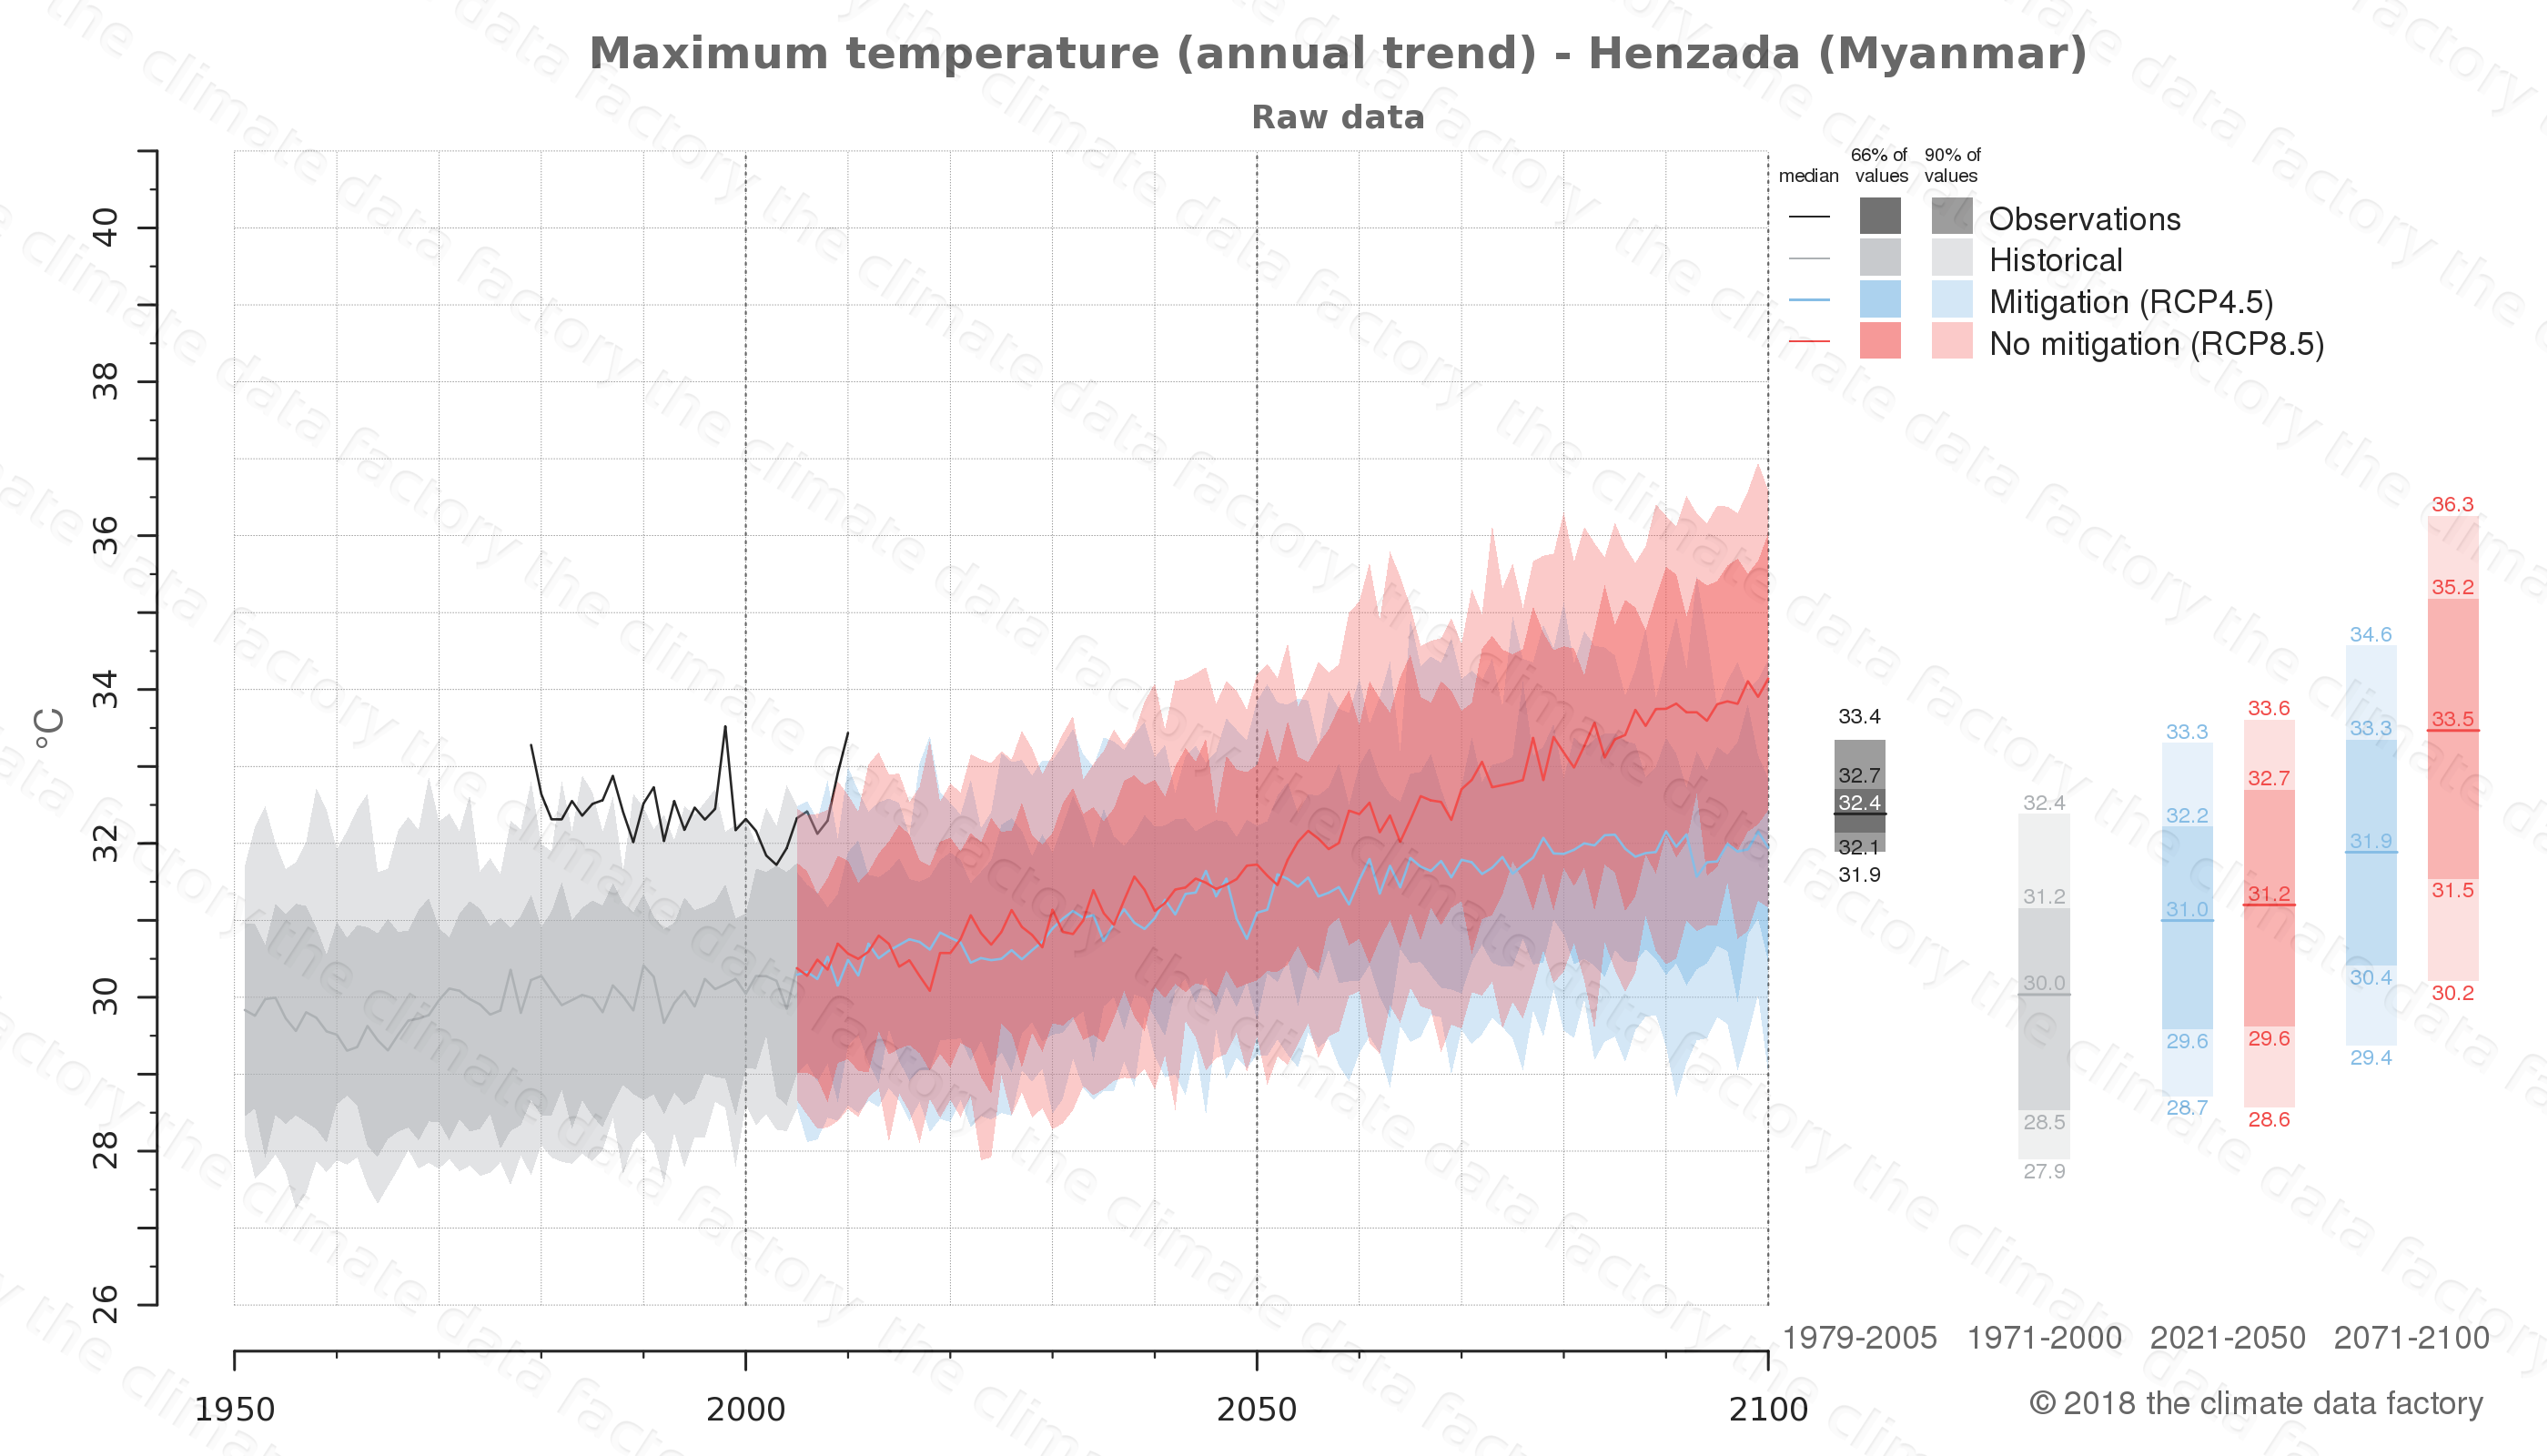 climate change data policy adaptation climate graph city data maximum-temperature henzada myanmar